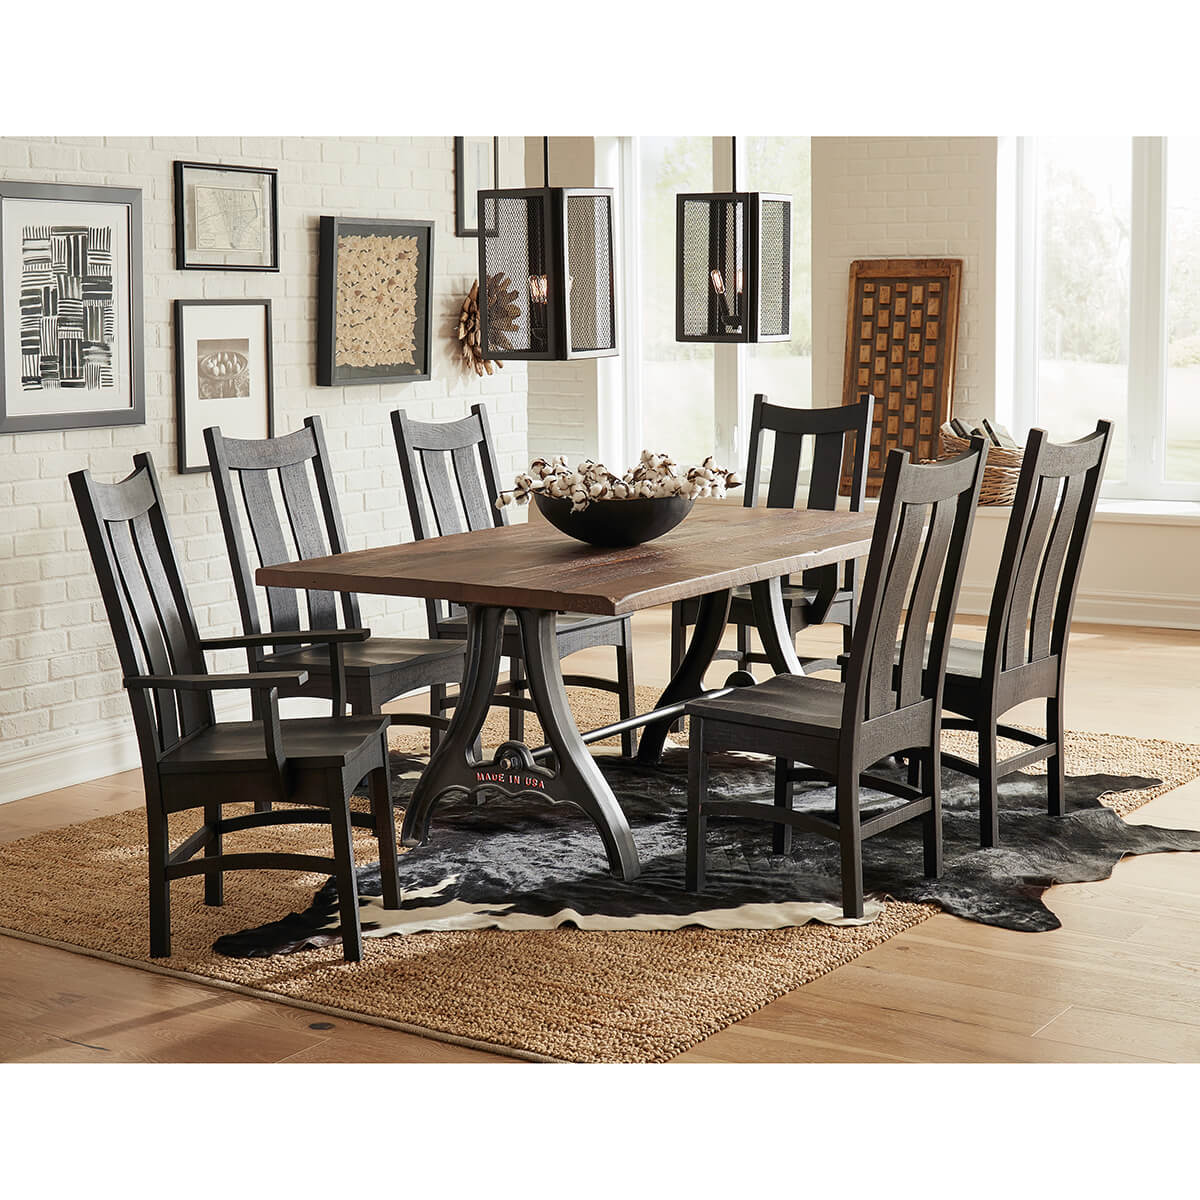 Country Shaker Dining Room Collection